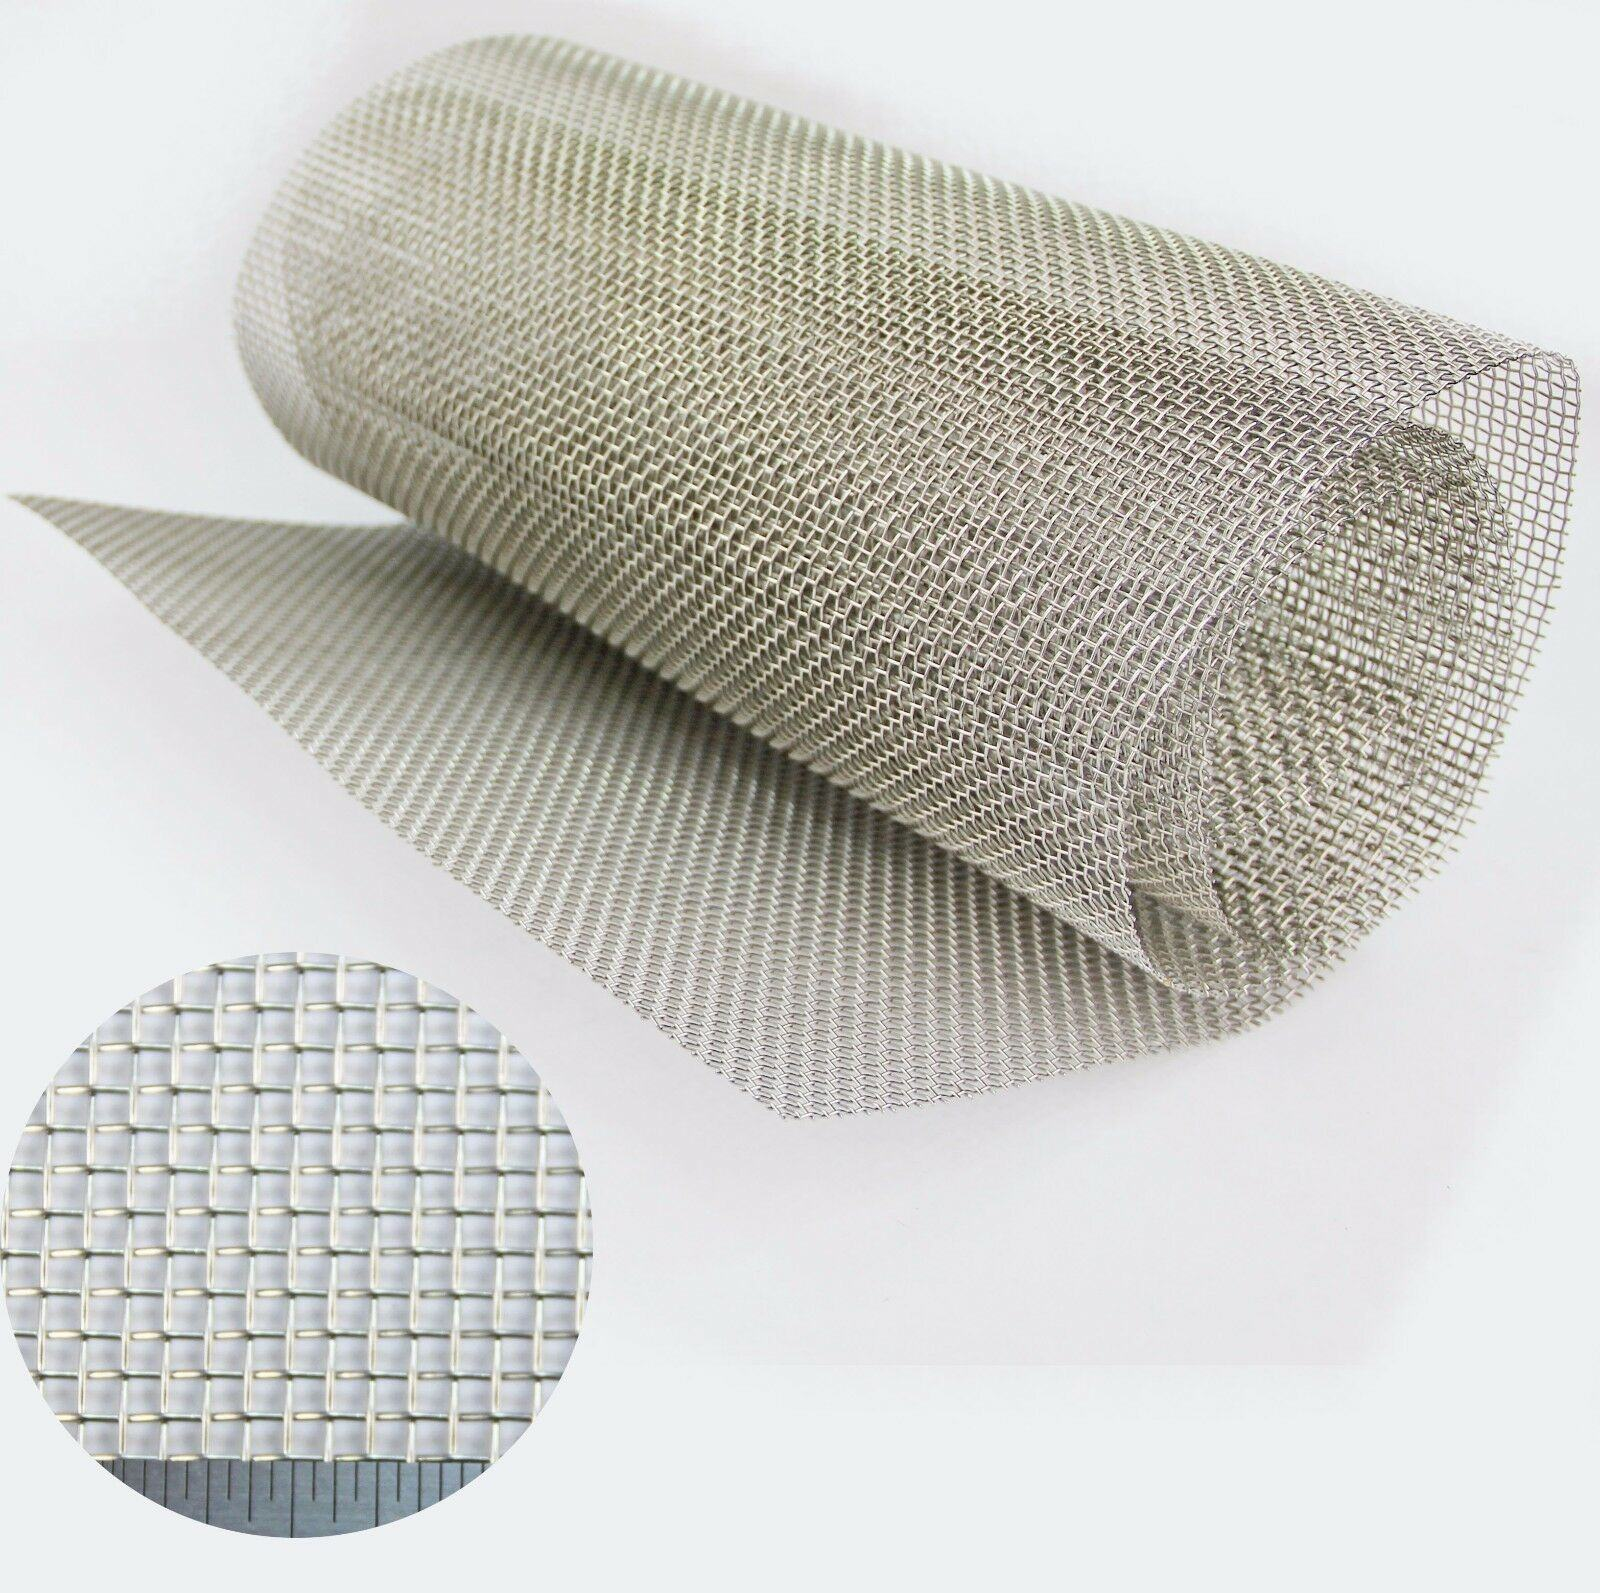 Resistant Stainless Steel Fine Filter Wire Mesh Screen